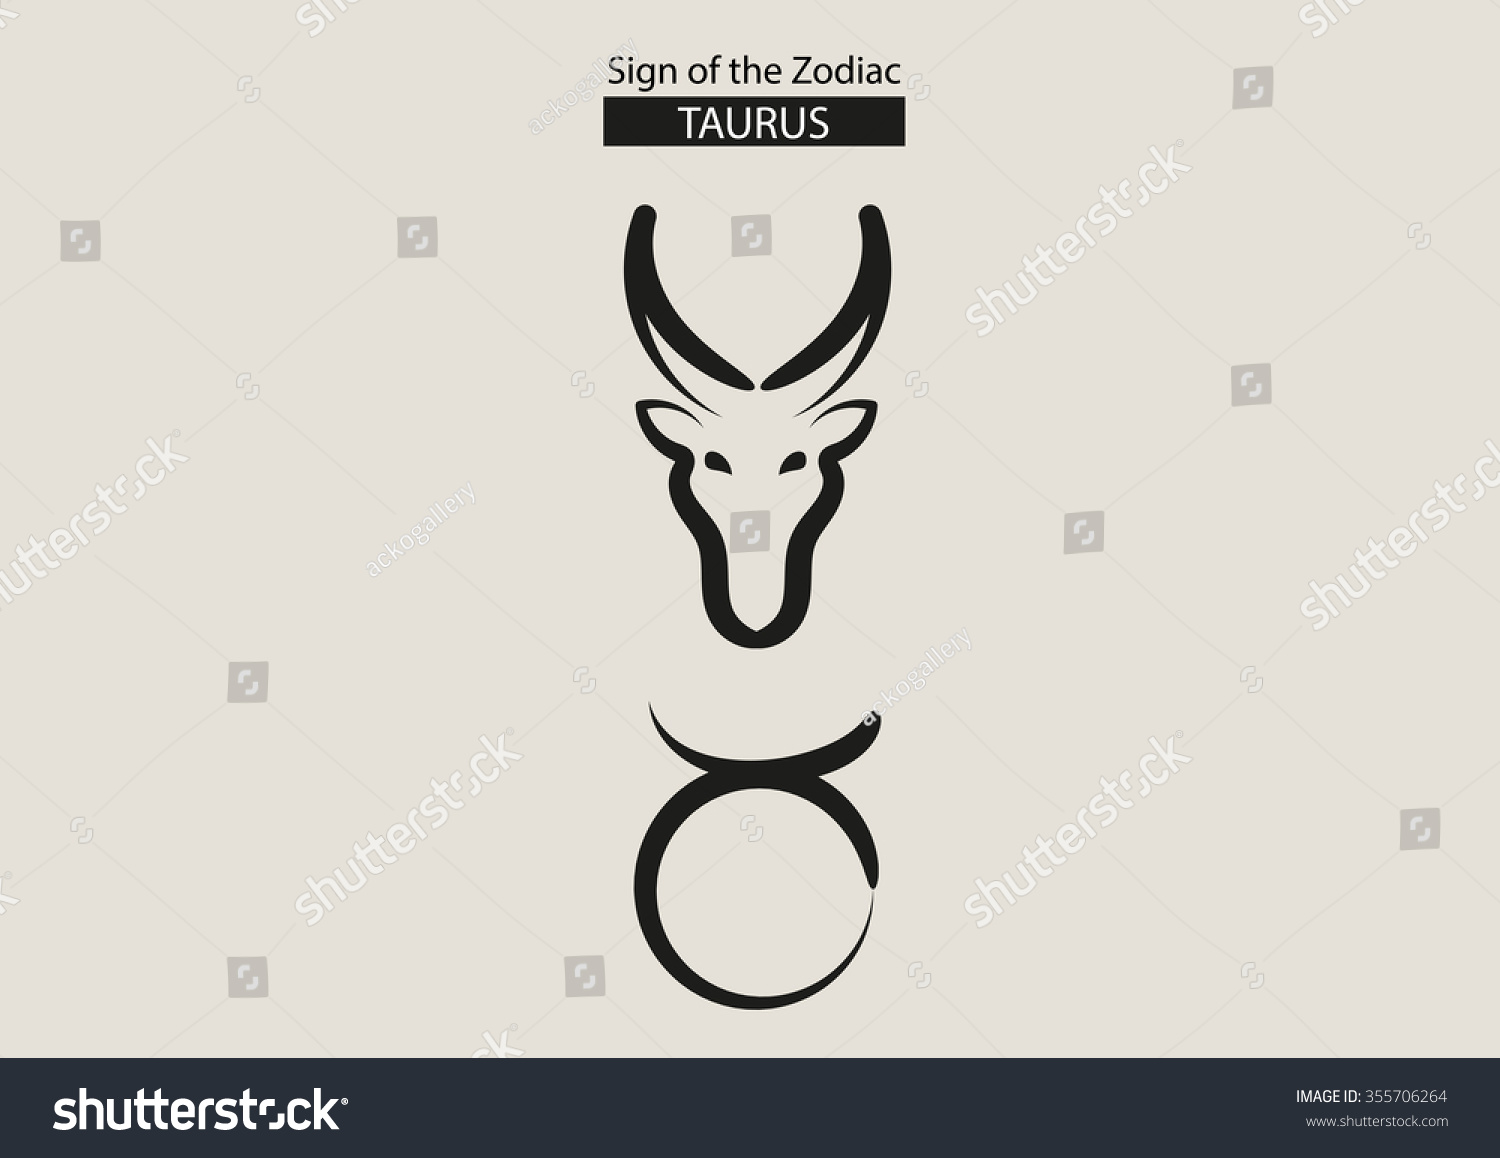 Sign of the zodiac calligraphy vector symbol